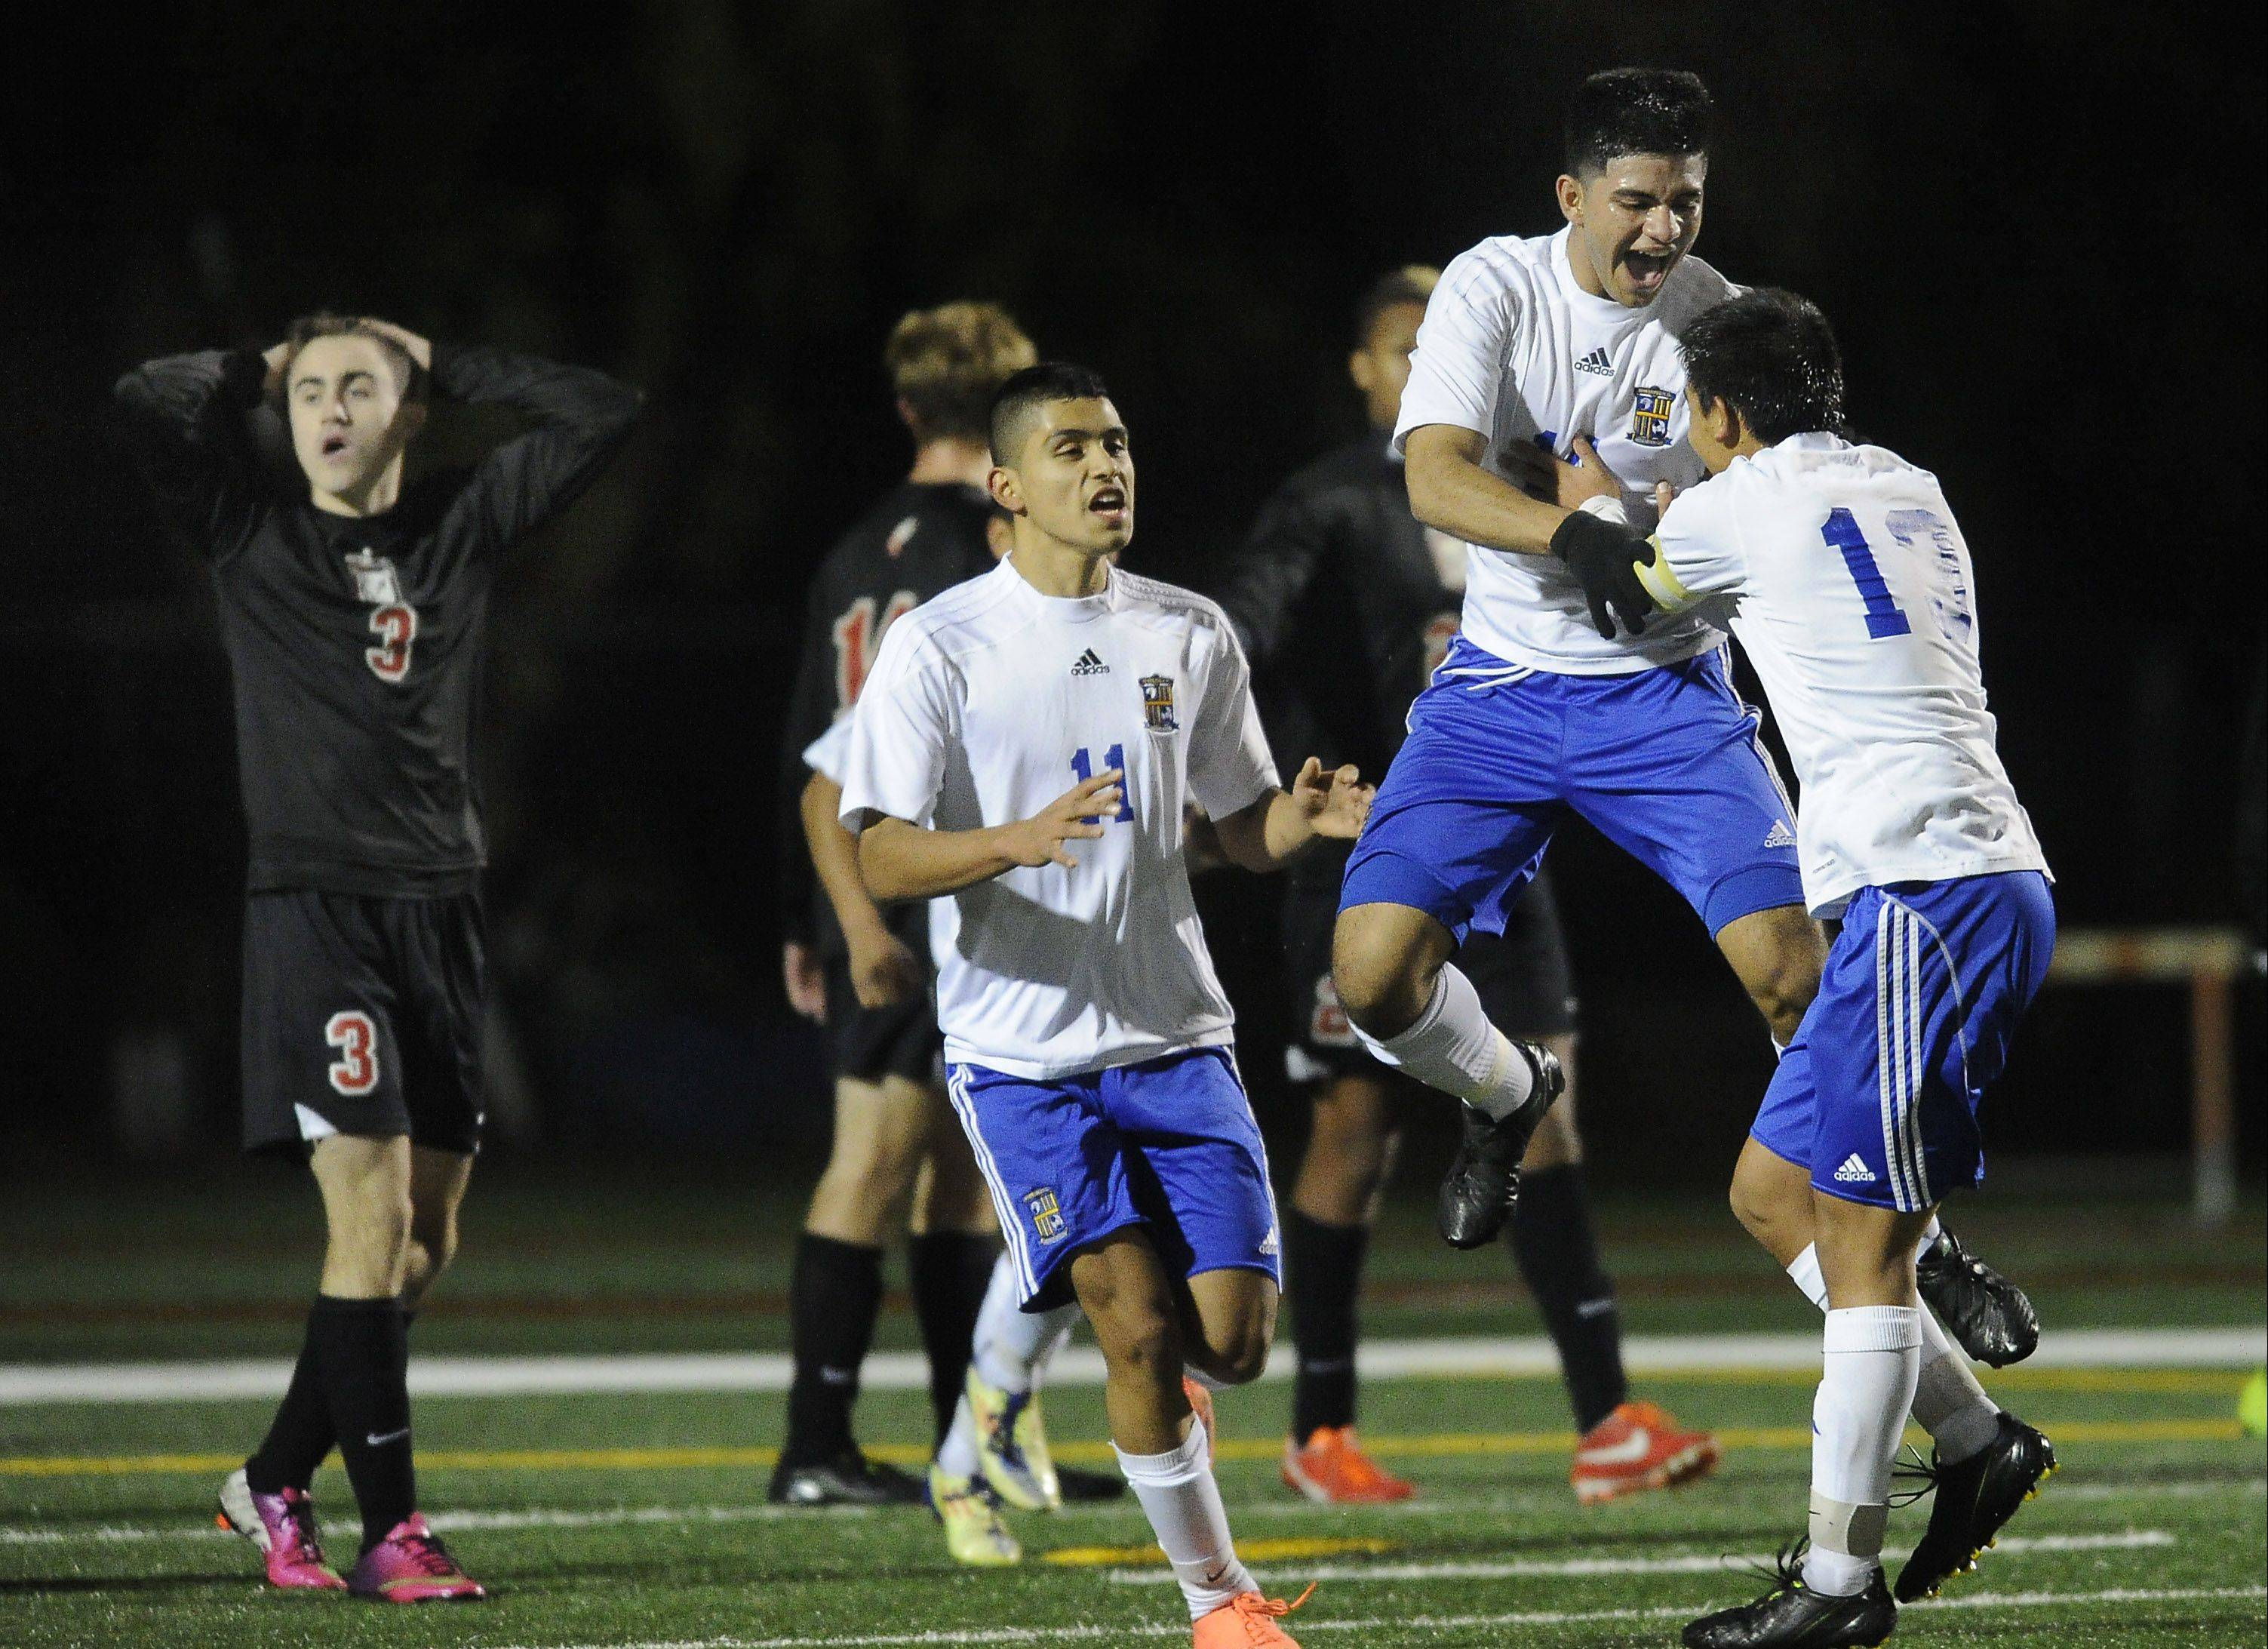 Wheeling's Marino Lopez and teammate Jose Garcia celebrate Lopez's go-ahead goal during the Wildcats' 2-1 victory over Barrington in Class 3A supersectional play at Hersey on Tuesday.